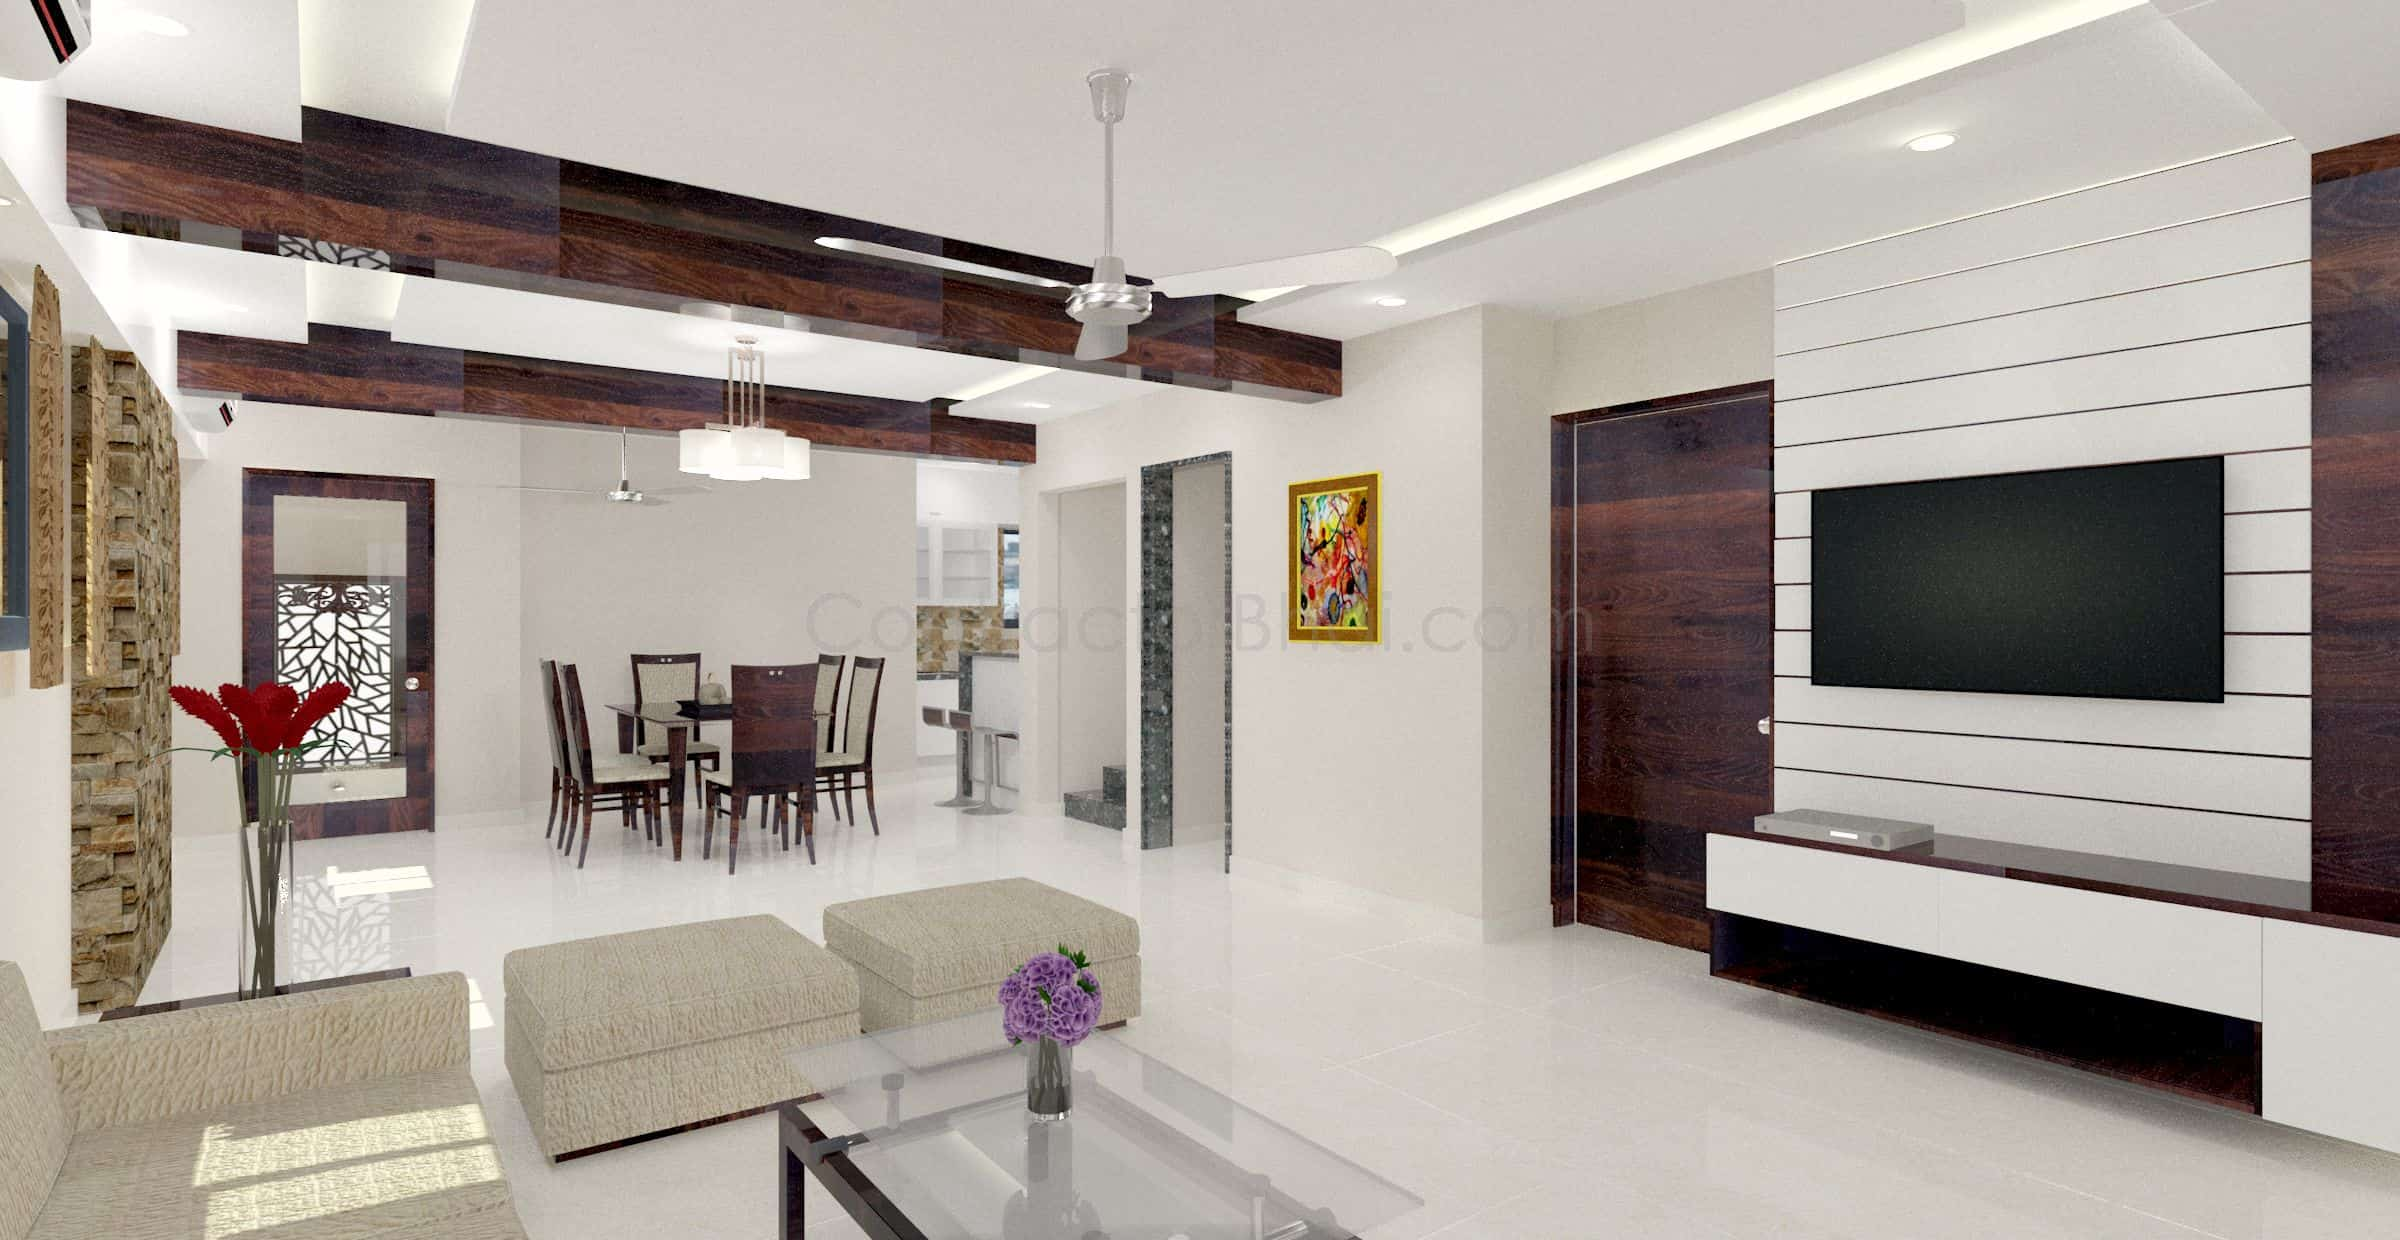 3d interior design service for indian homes contractorbhai for House interior designs 3d